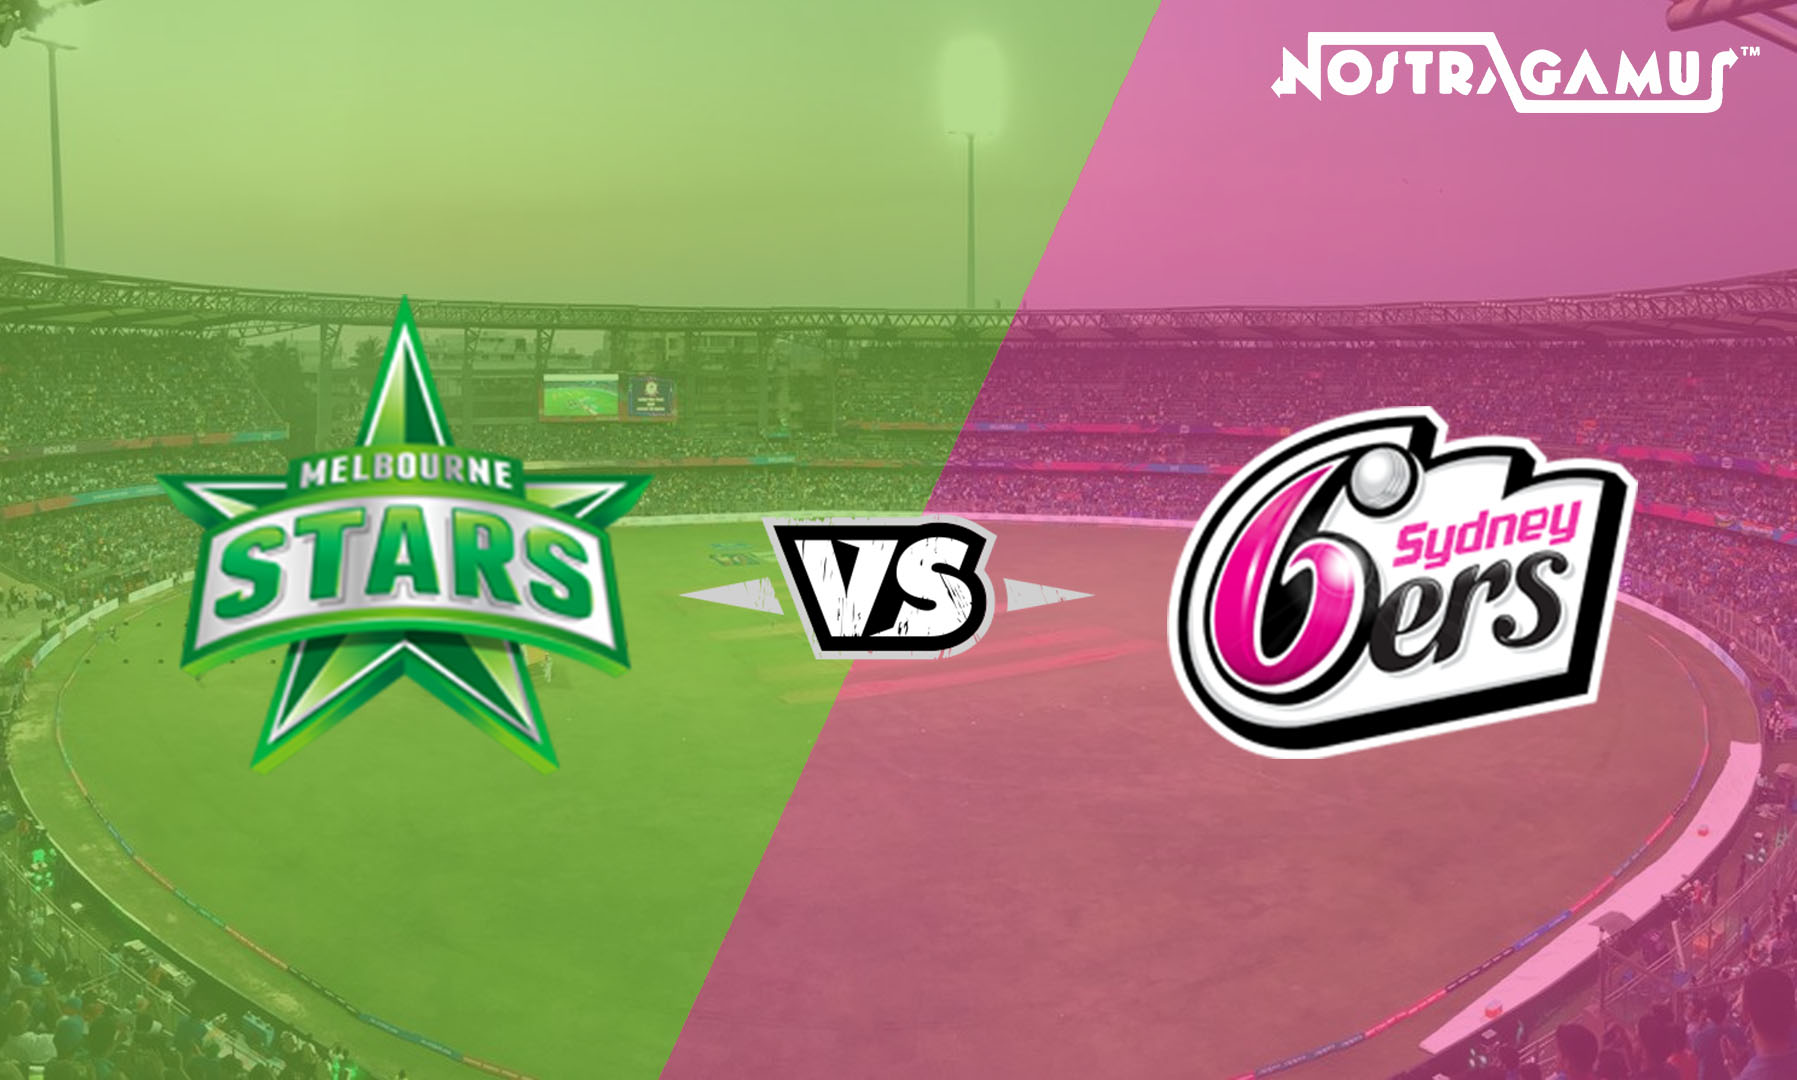 Big Bash League Predictions: Sydney Sixers vs Melbourne Stars